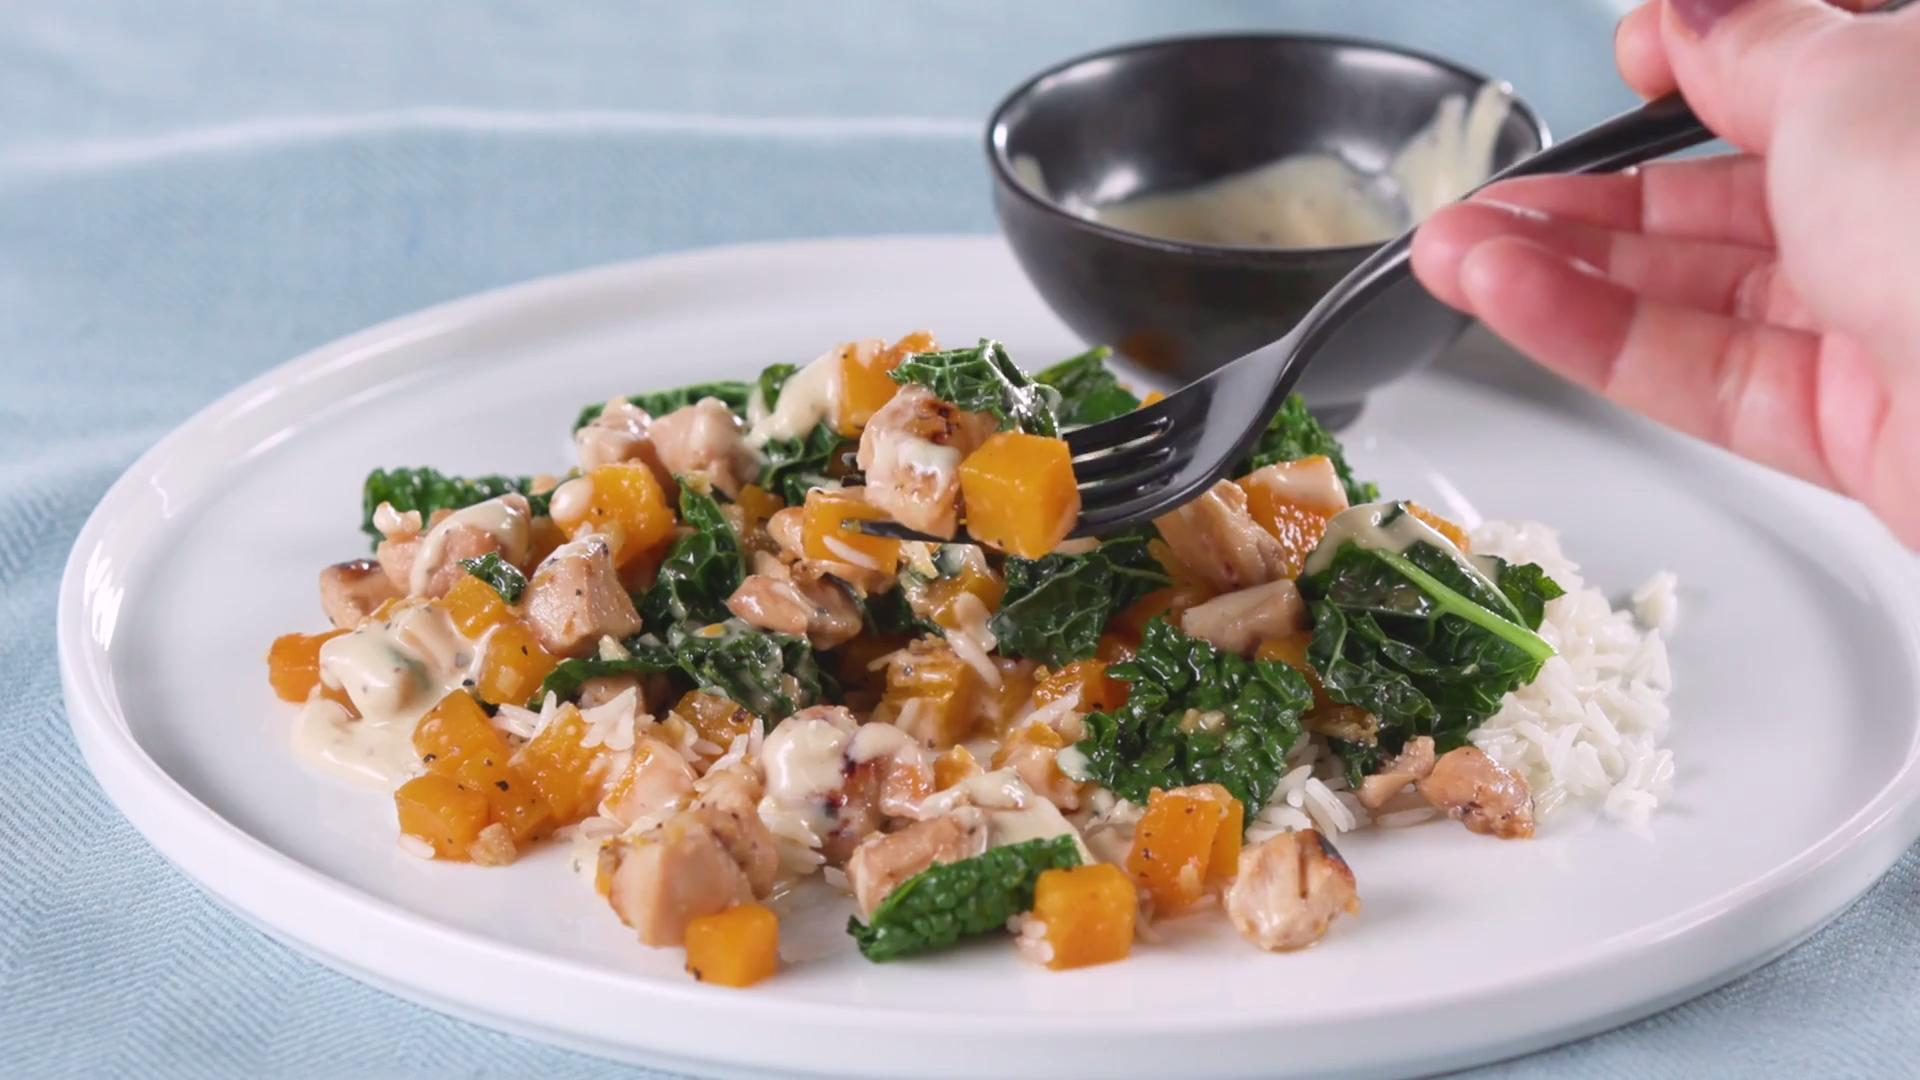 How to Make Tahini Dressed Chicken With Squash and Kale